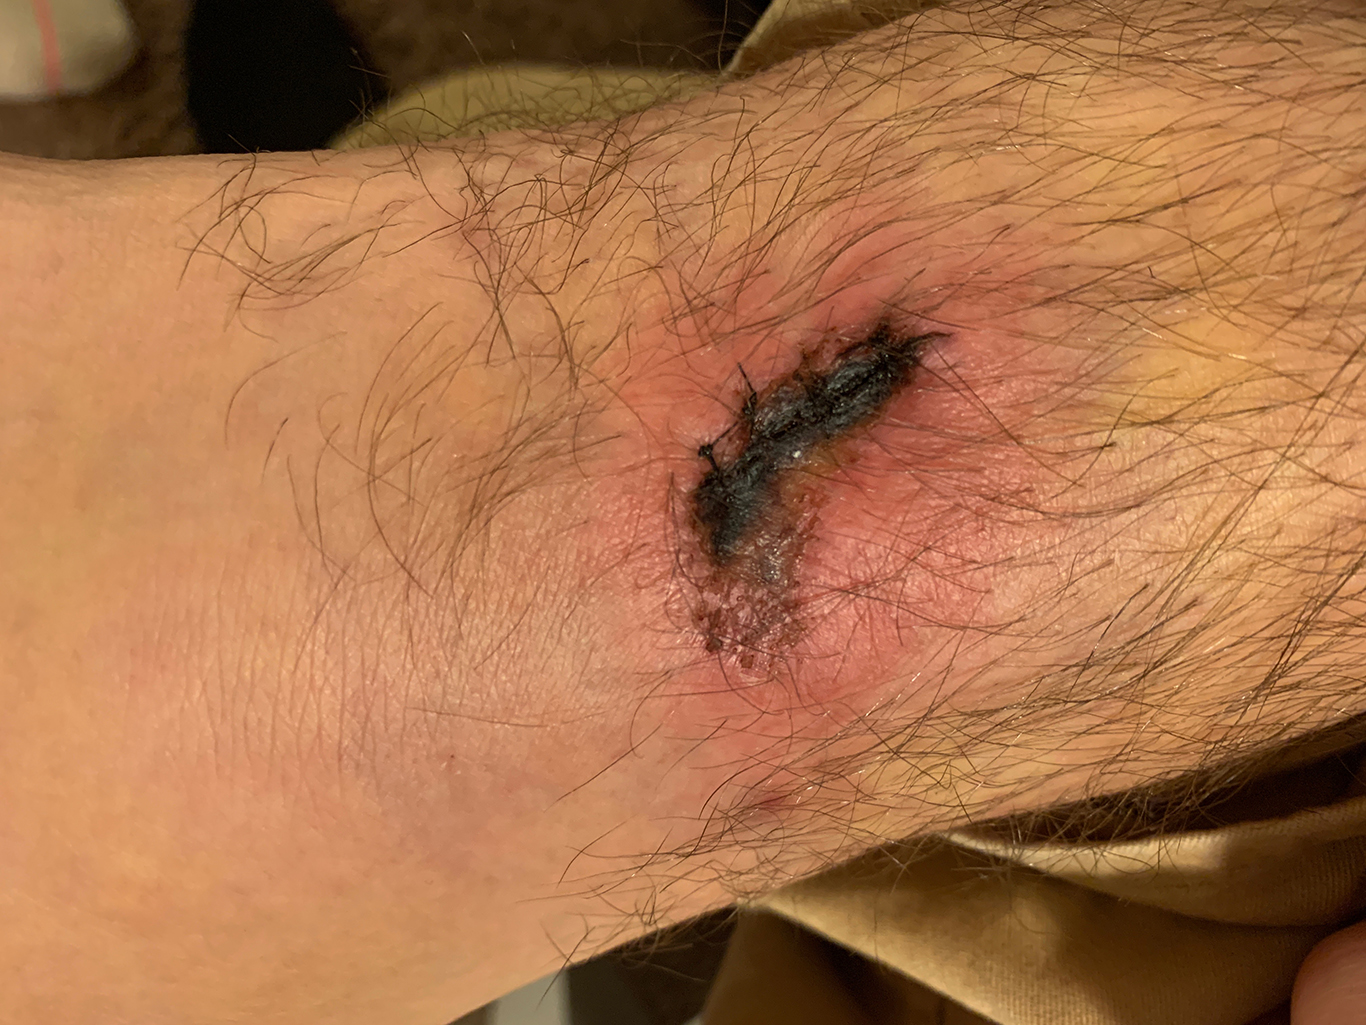 Wound Day 2, infected